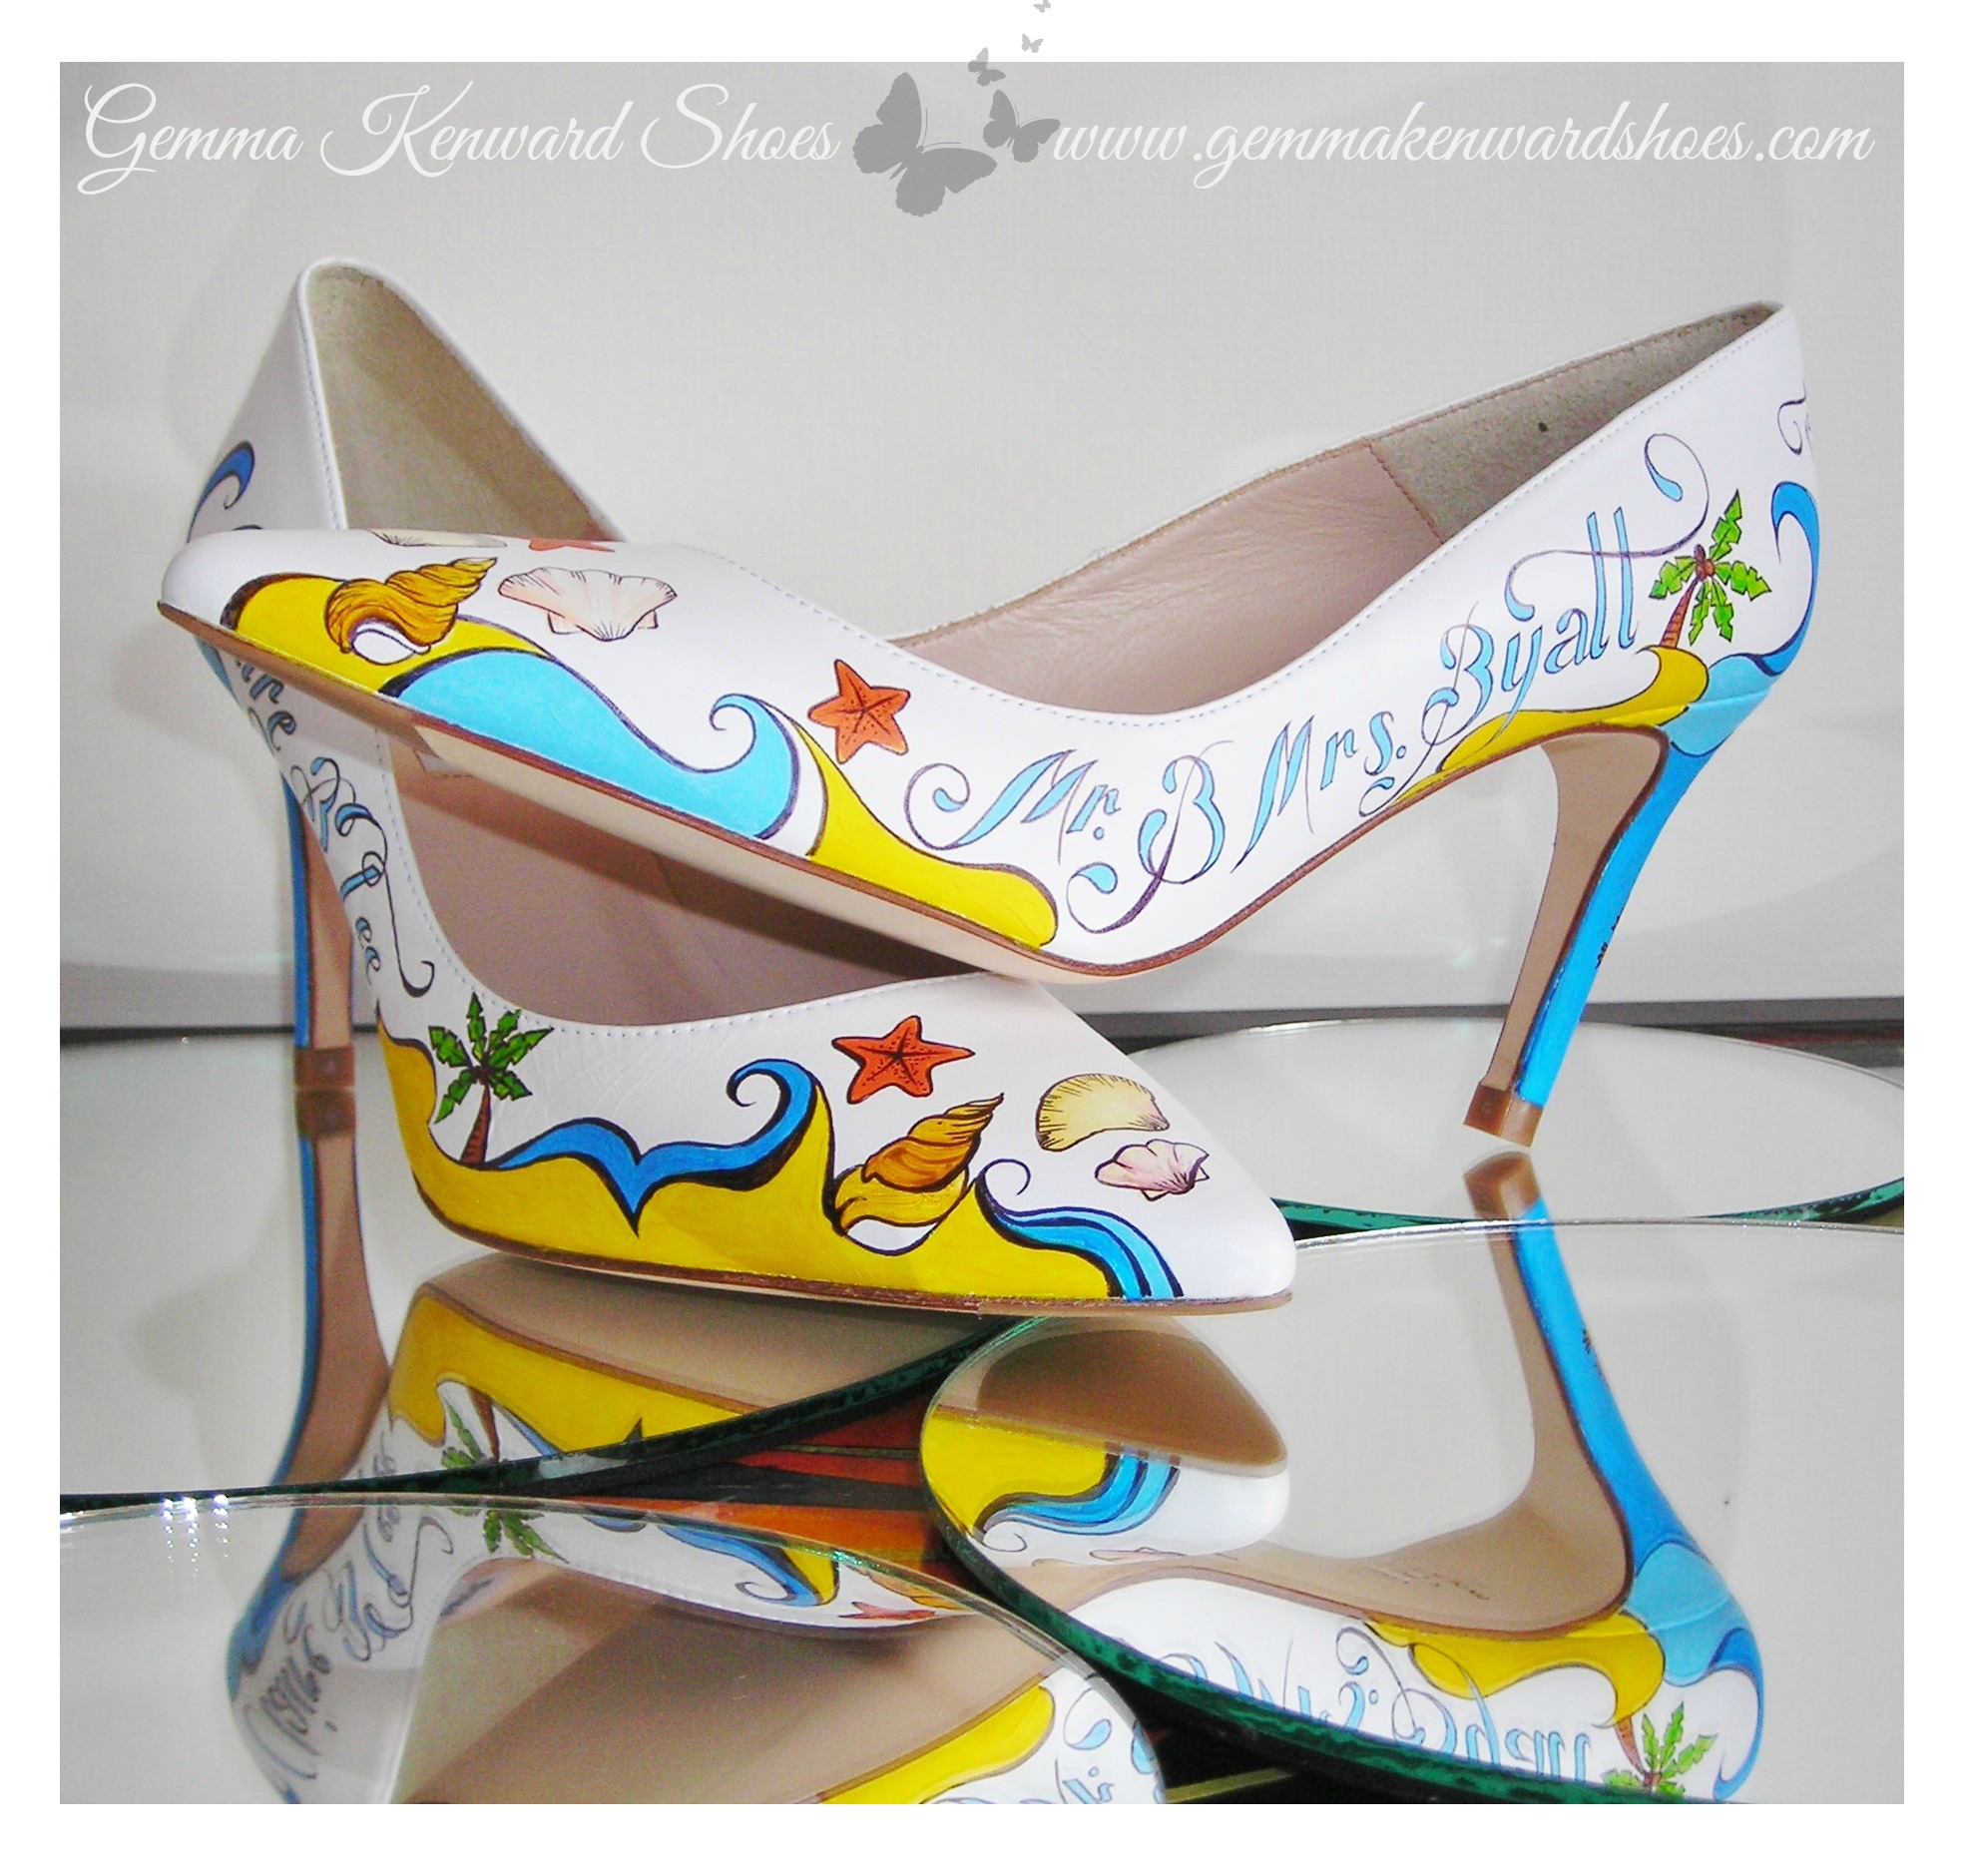 Bespoke Hand Painted Wedding shoes Customised With Shells, Waves and Sand